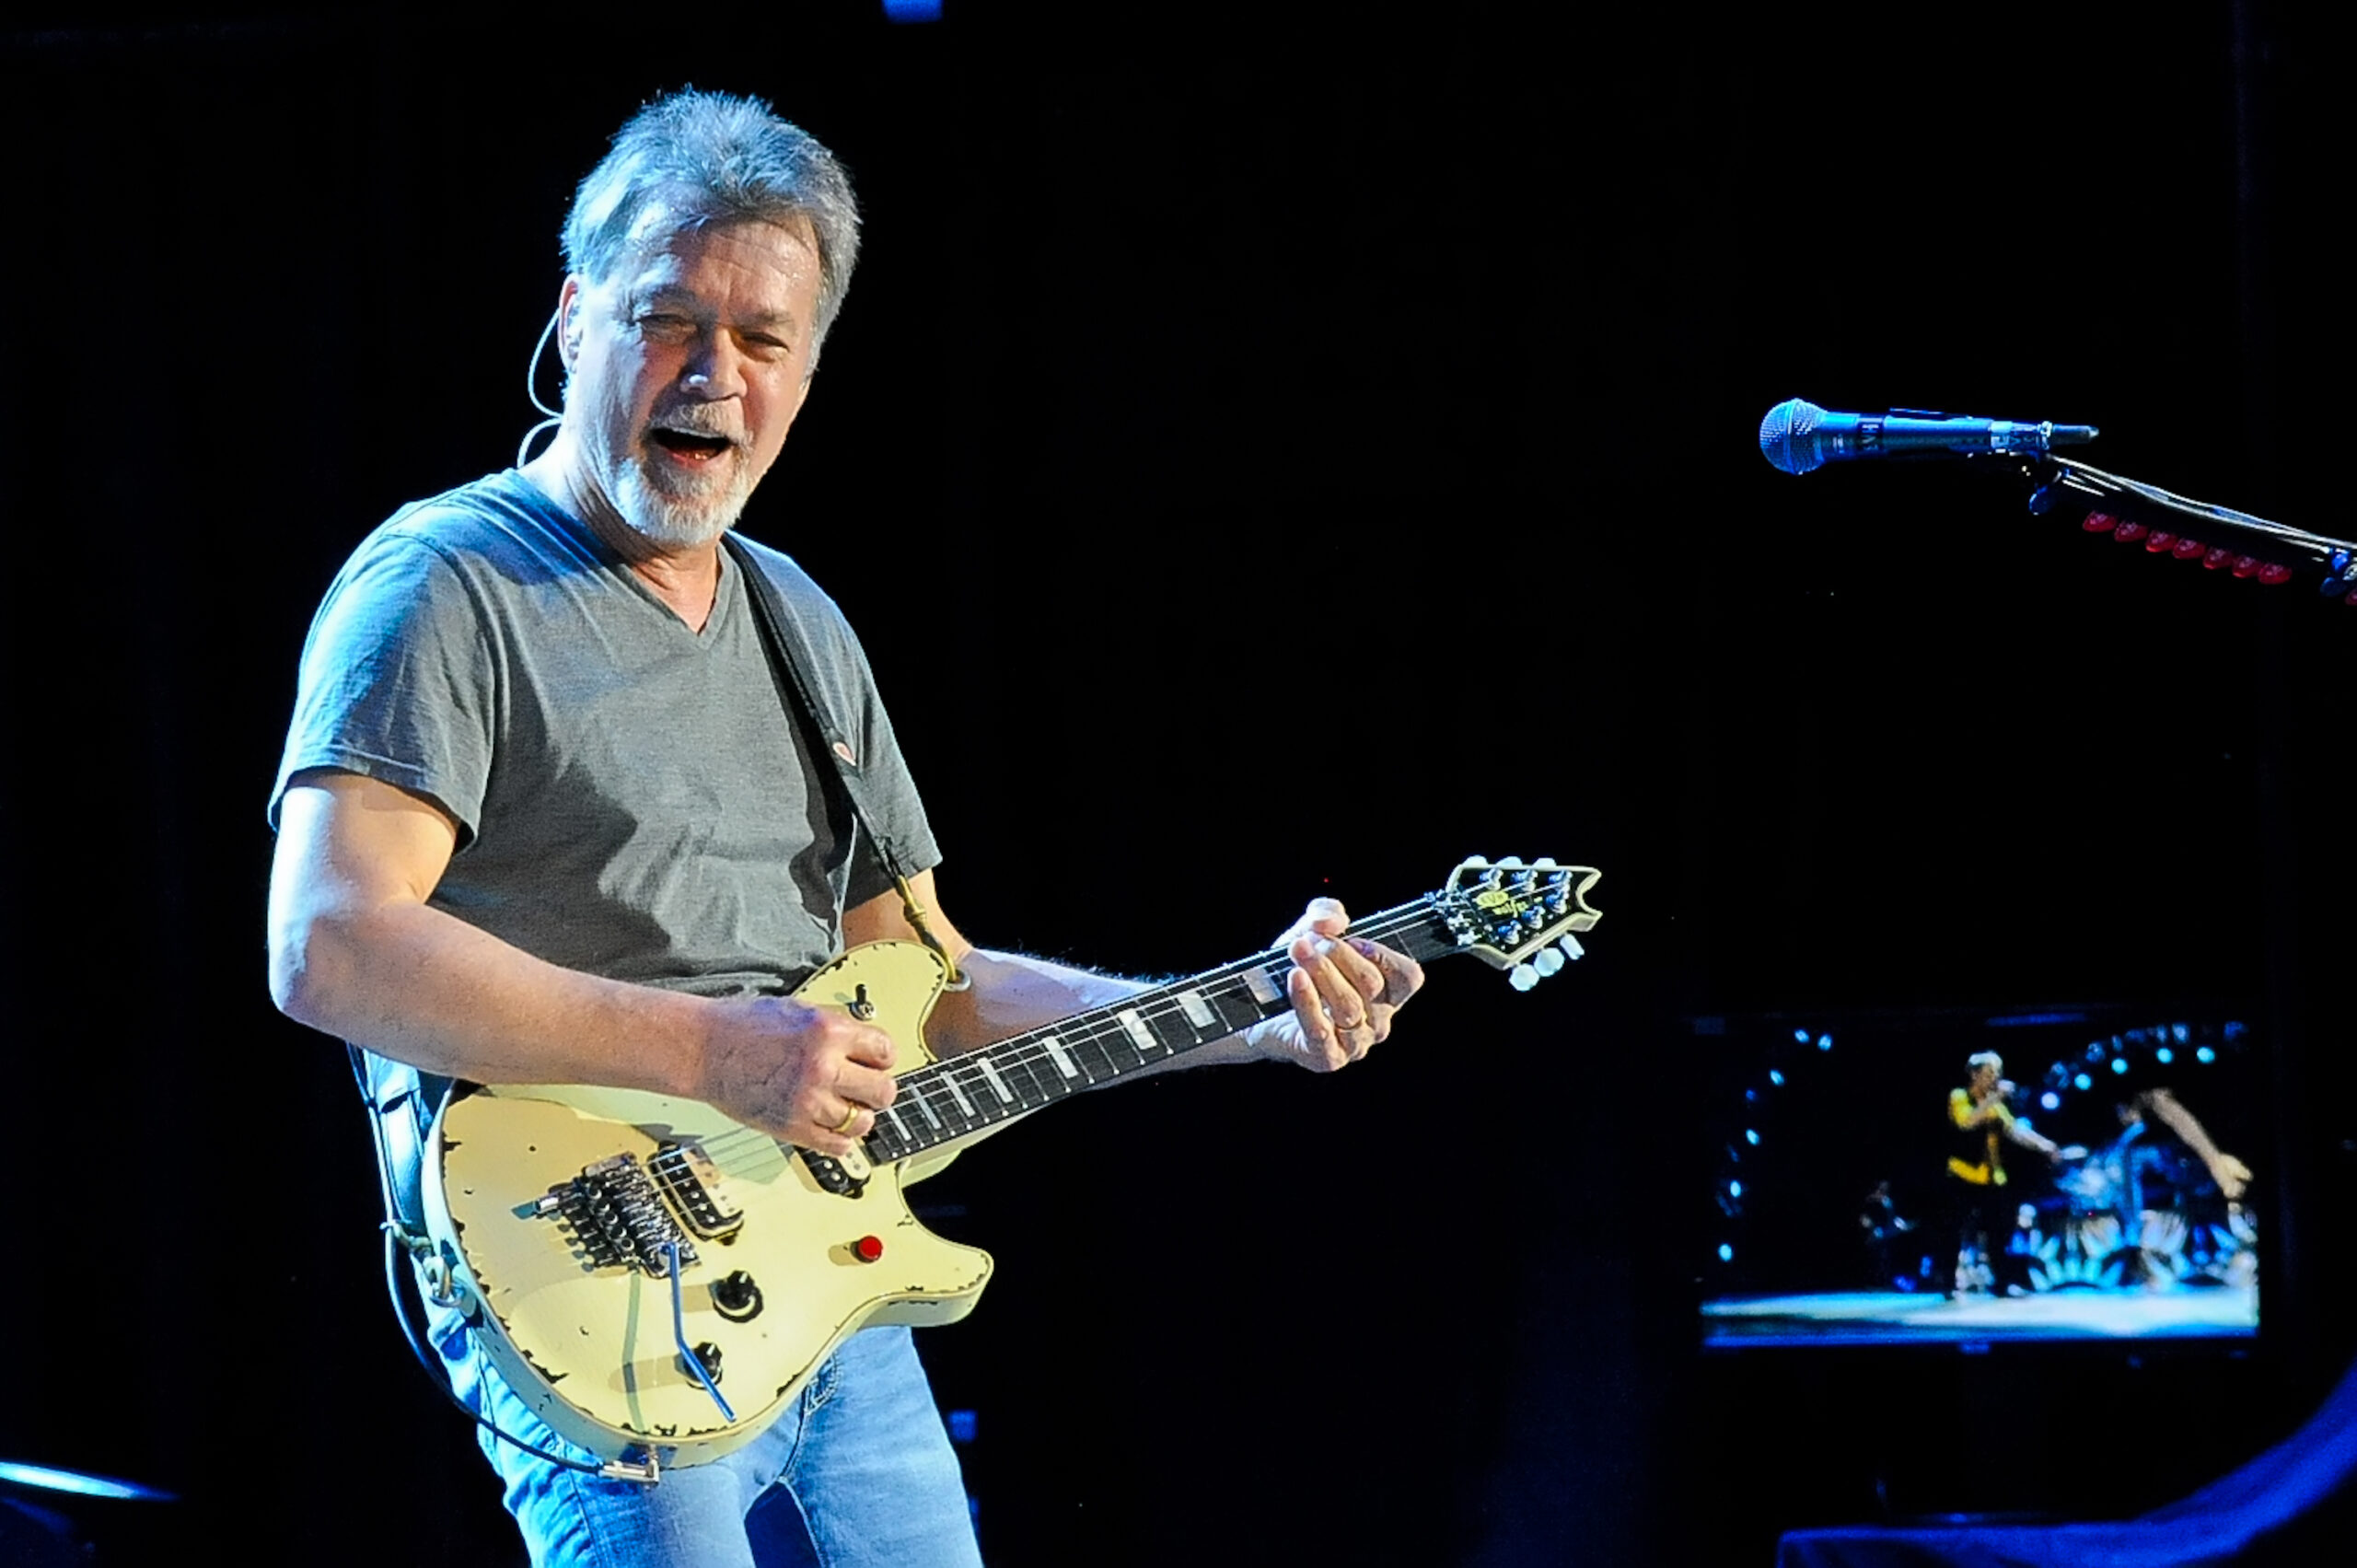 Eddie Van Halen of Van Halen performs in concert at The Cynthia Woods Mitchell Pavilion on September 25, 2015 in The Woodlands, Texas. Photo © Manuel Nauta